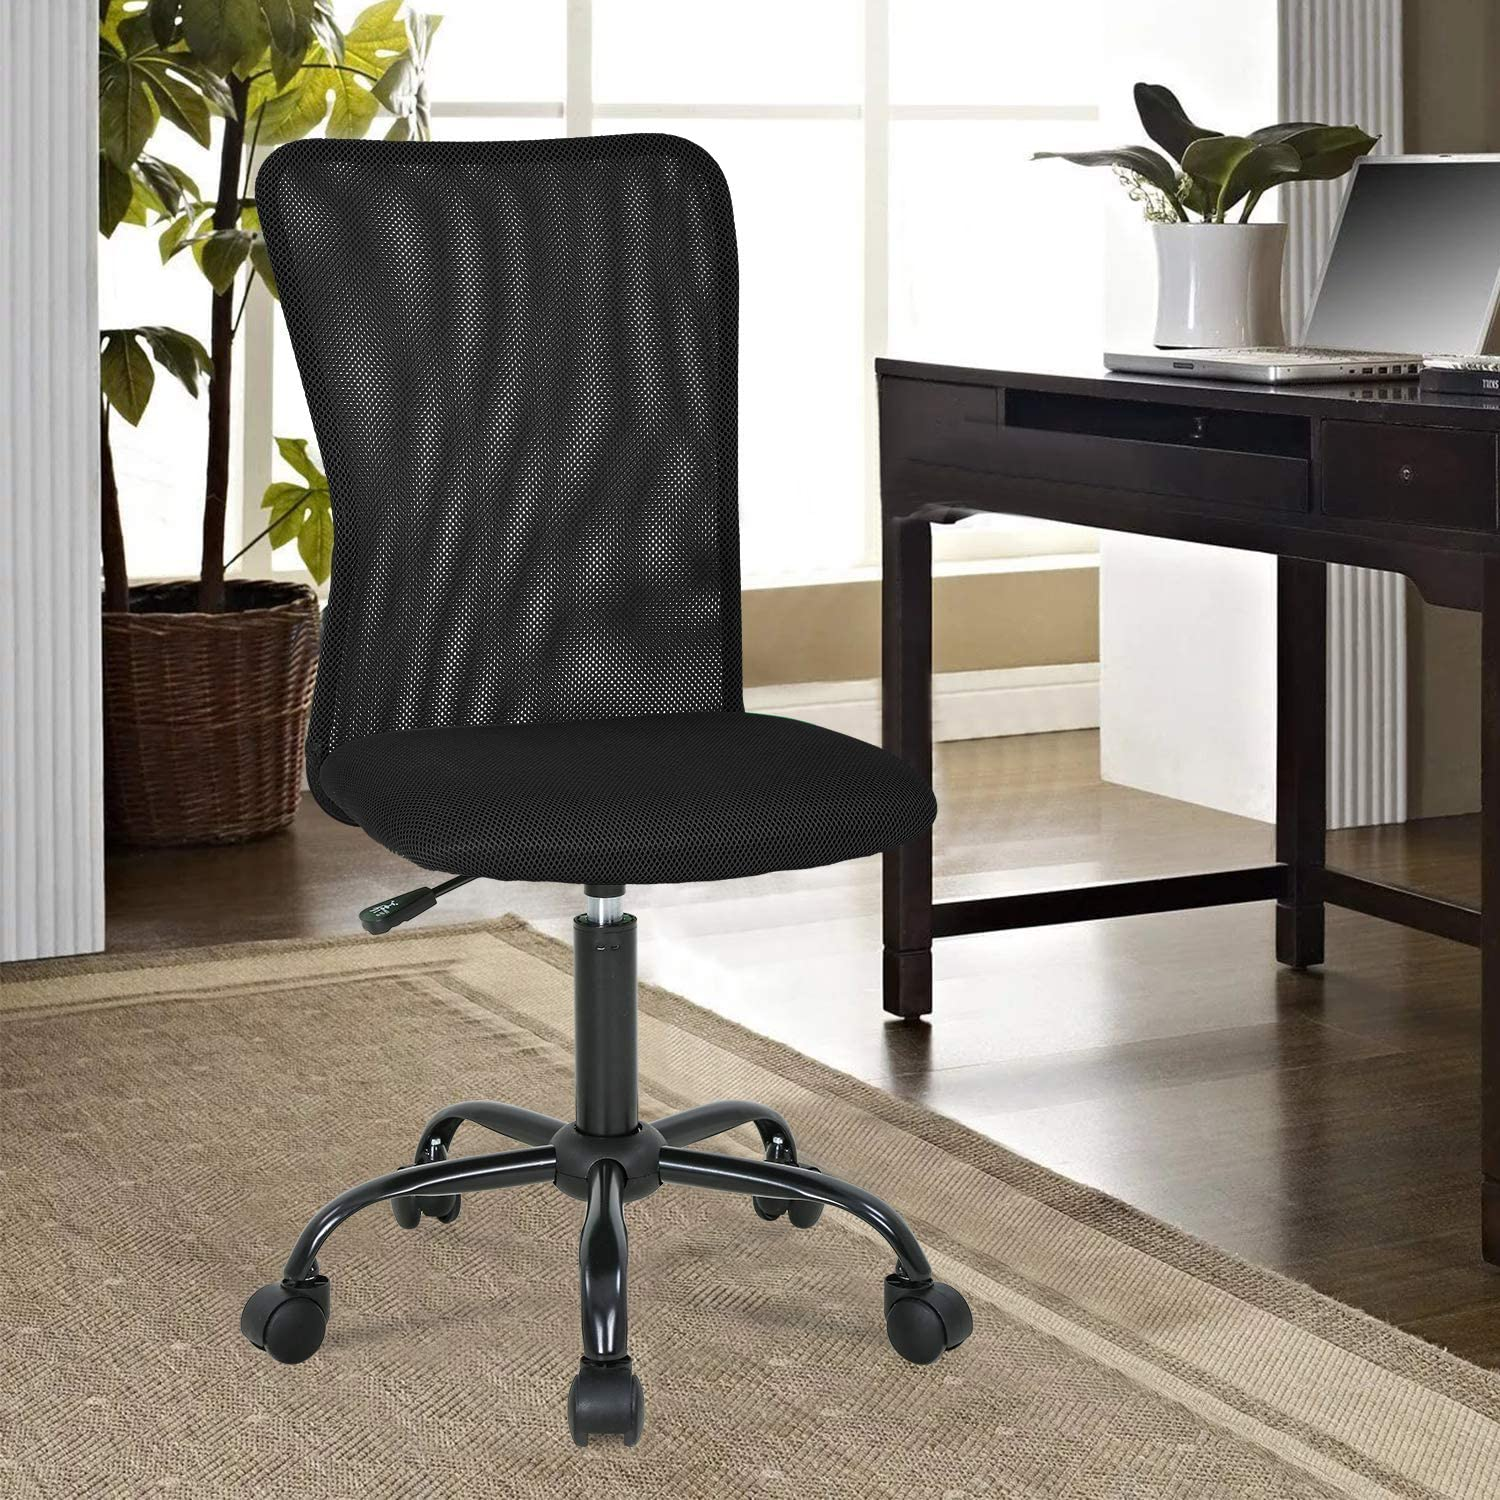 OffiClever Ergonomic wholesale Office Mesh Support Executive Ba Modern Atlanta Mall Mid